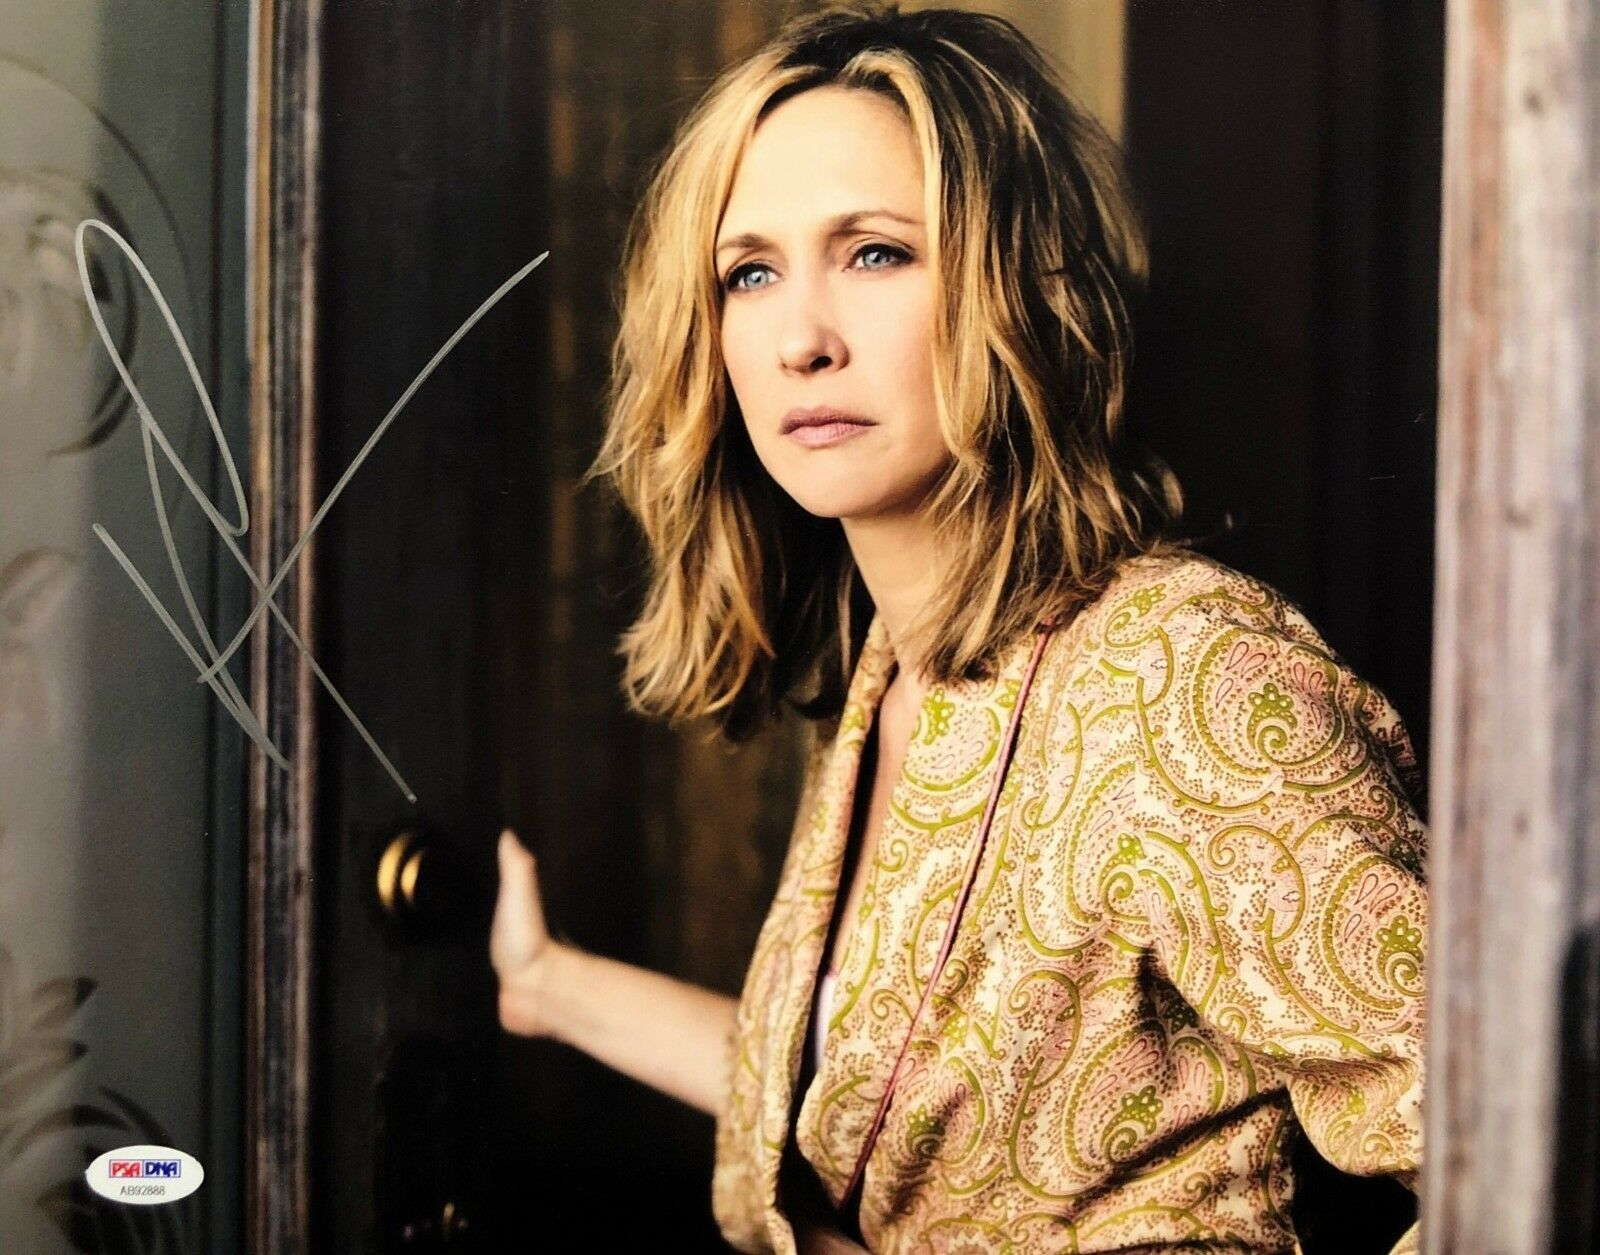 Vera Farmiga Signed 11x14 Photo *The Commuter PSA AB92888